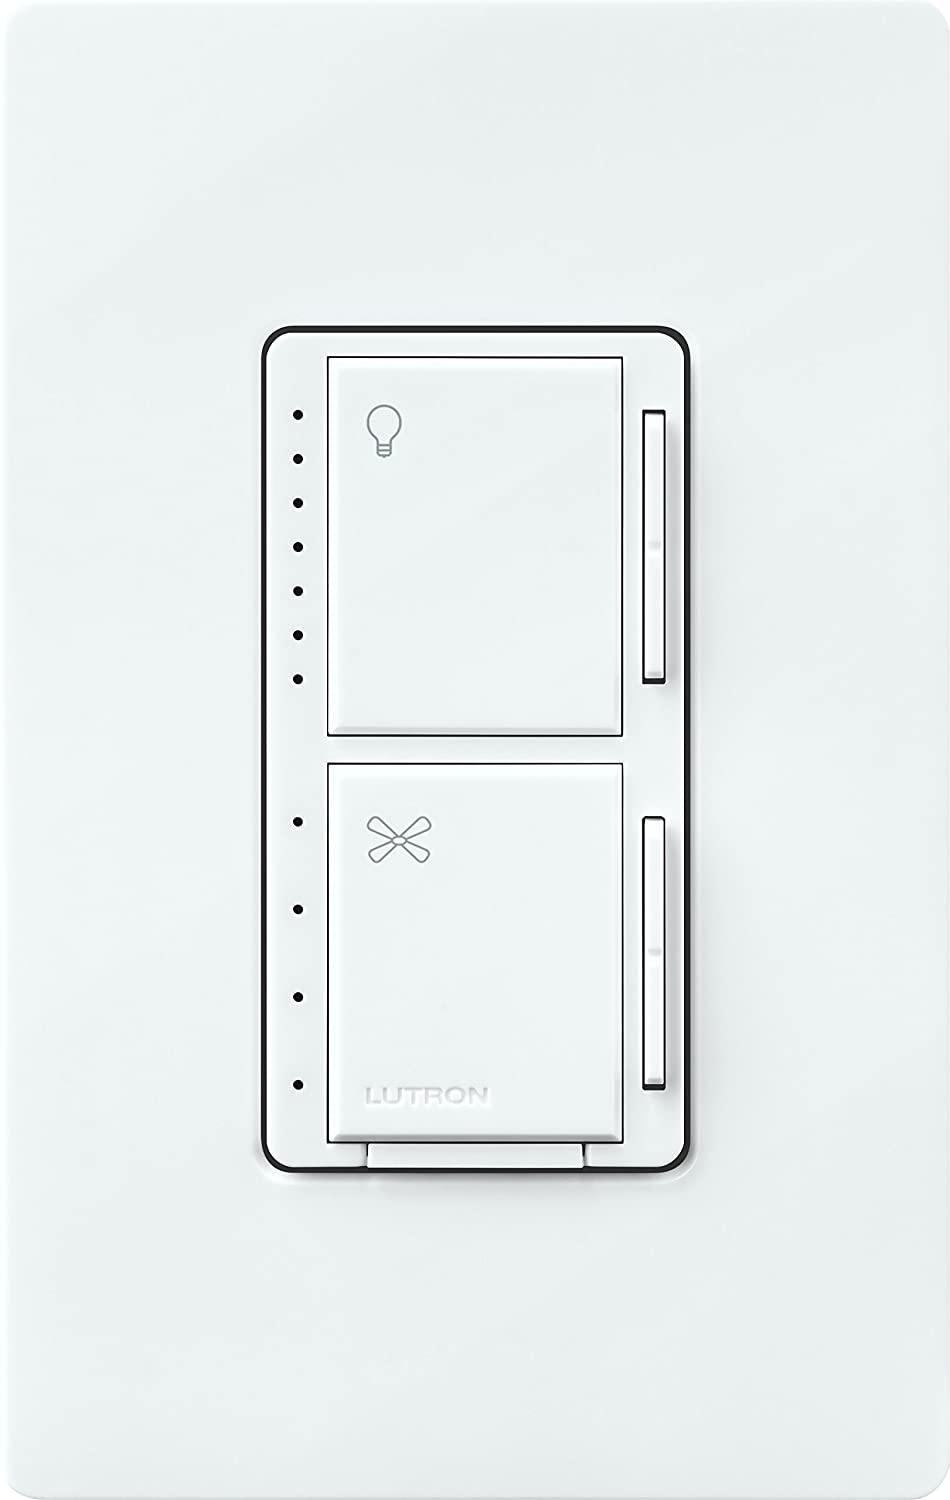 Lutron Maestro Fan Control And Light Dimmer For Dimmable Leds As 3 Way Switch In Addition Single Pole Double Wiring Incandescent Halogen Macl Lfq Wh White